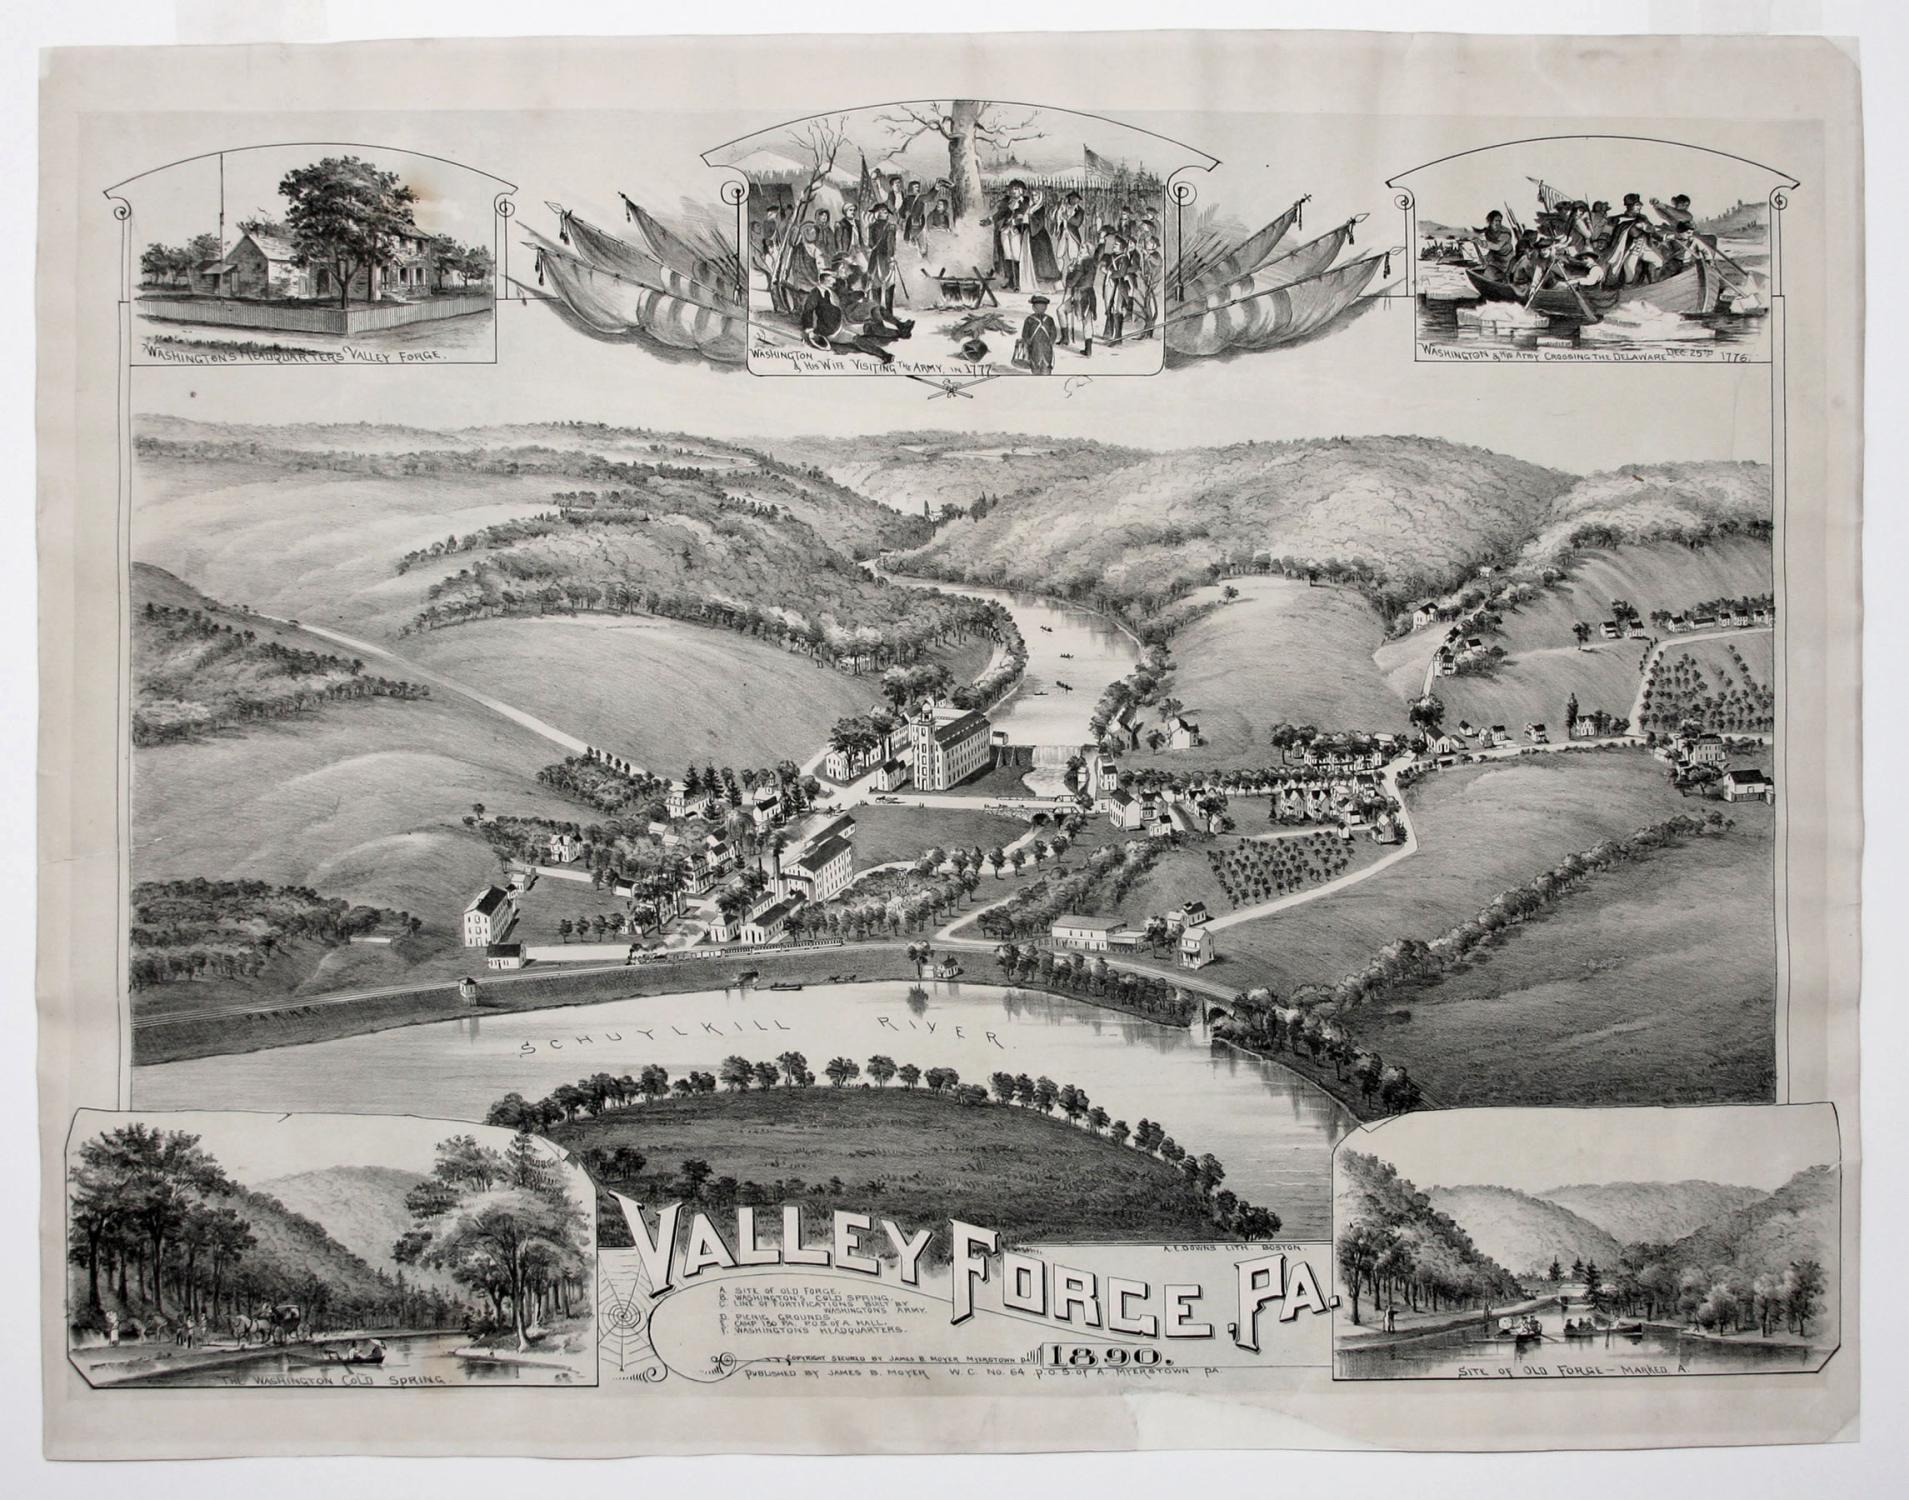 Valley Forge, Pa. 1890.: MOYER, James B./ FOWLER, T. M./ DOWNS, A. E.